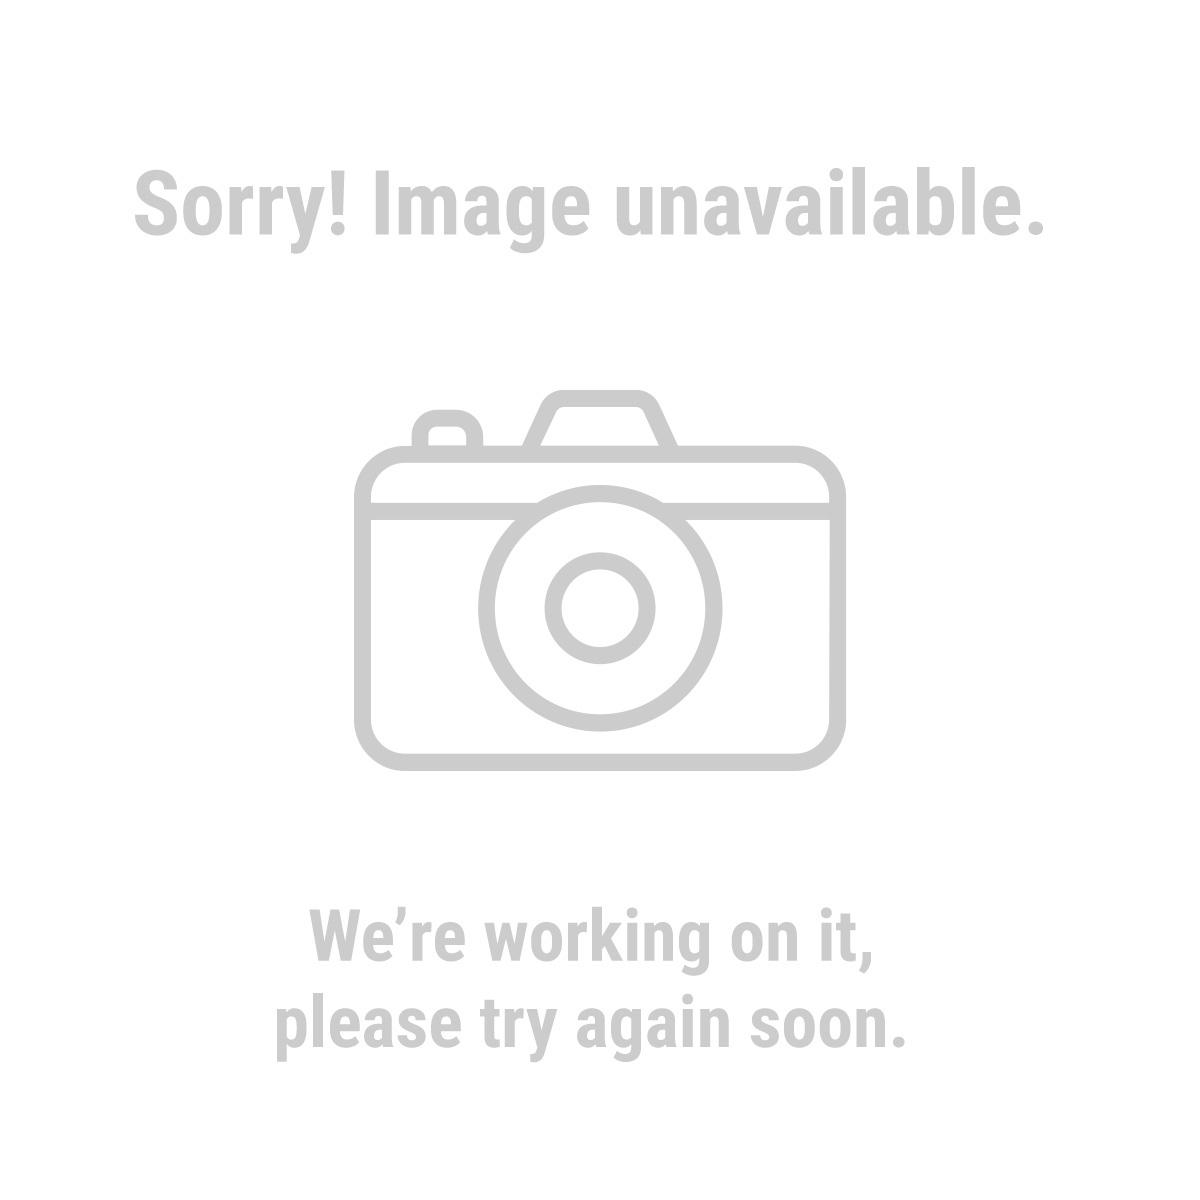 "H-M 37767 13"" x 5"" Heavy Duty Pneumatic Tire"